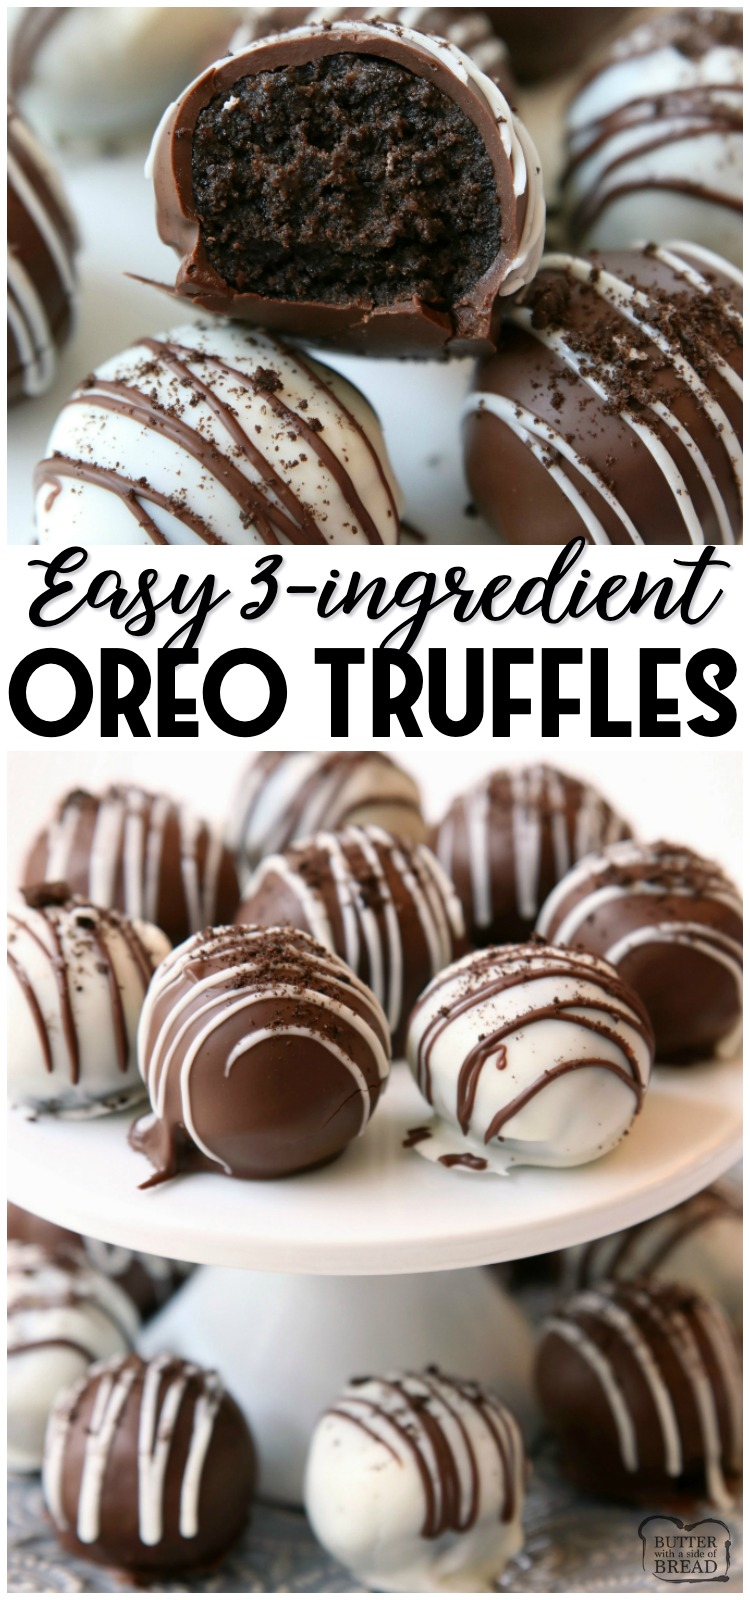 Oreo Balls made with just 3 ingredients & perfect easy dessert! Oreo Truffles made in minutes and so delicious, no one can guess they're made with Oreo cookies! #oreo #truffles #easy #dessert #chocolate #recipe from BUTTER WITH A SIDE OF BREAD